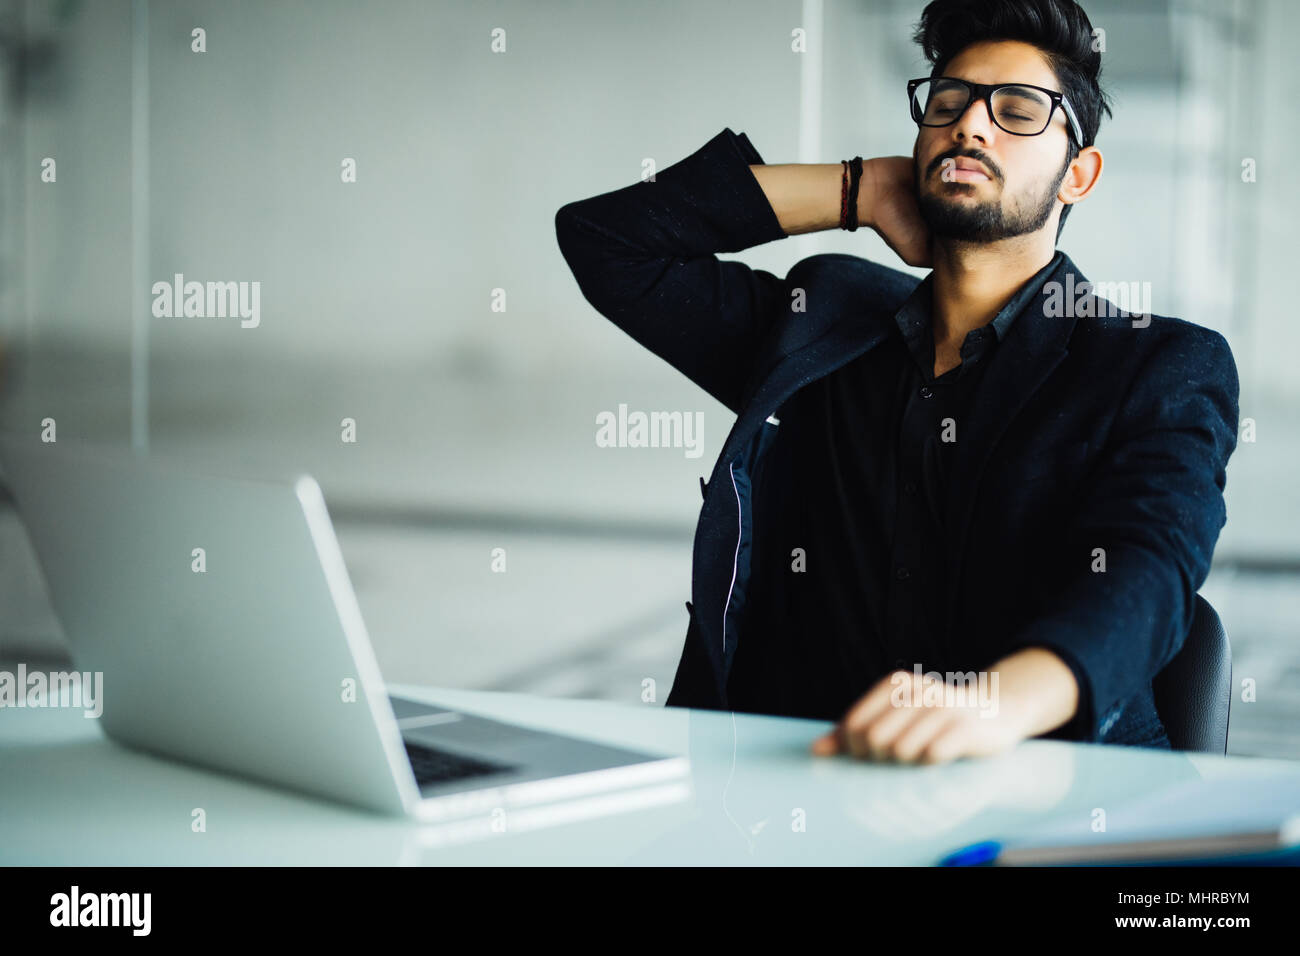 Tired and worried indian business man at workplace in office Stock Photo